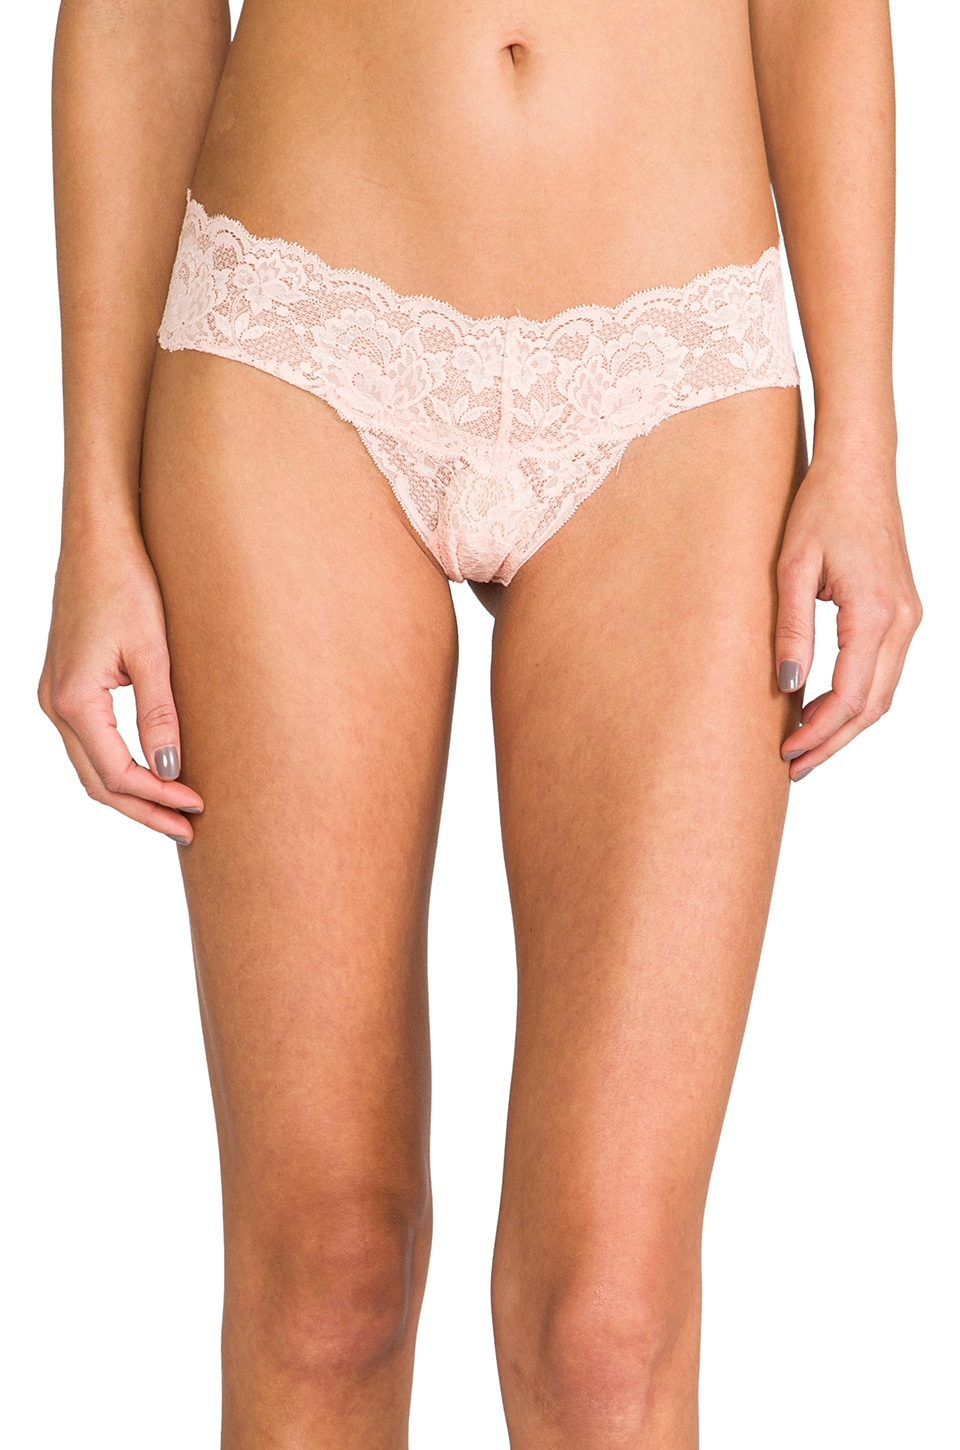 Cosabella Never Say Never Cutie LR Thong in Bellini